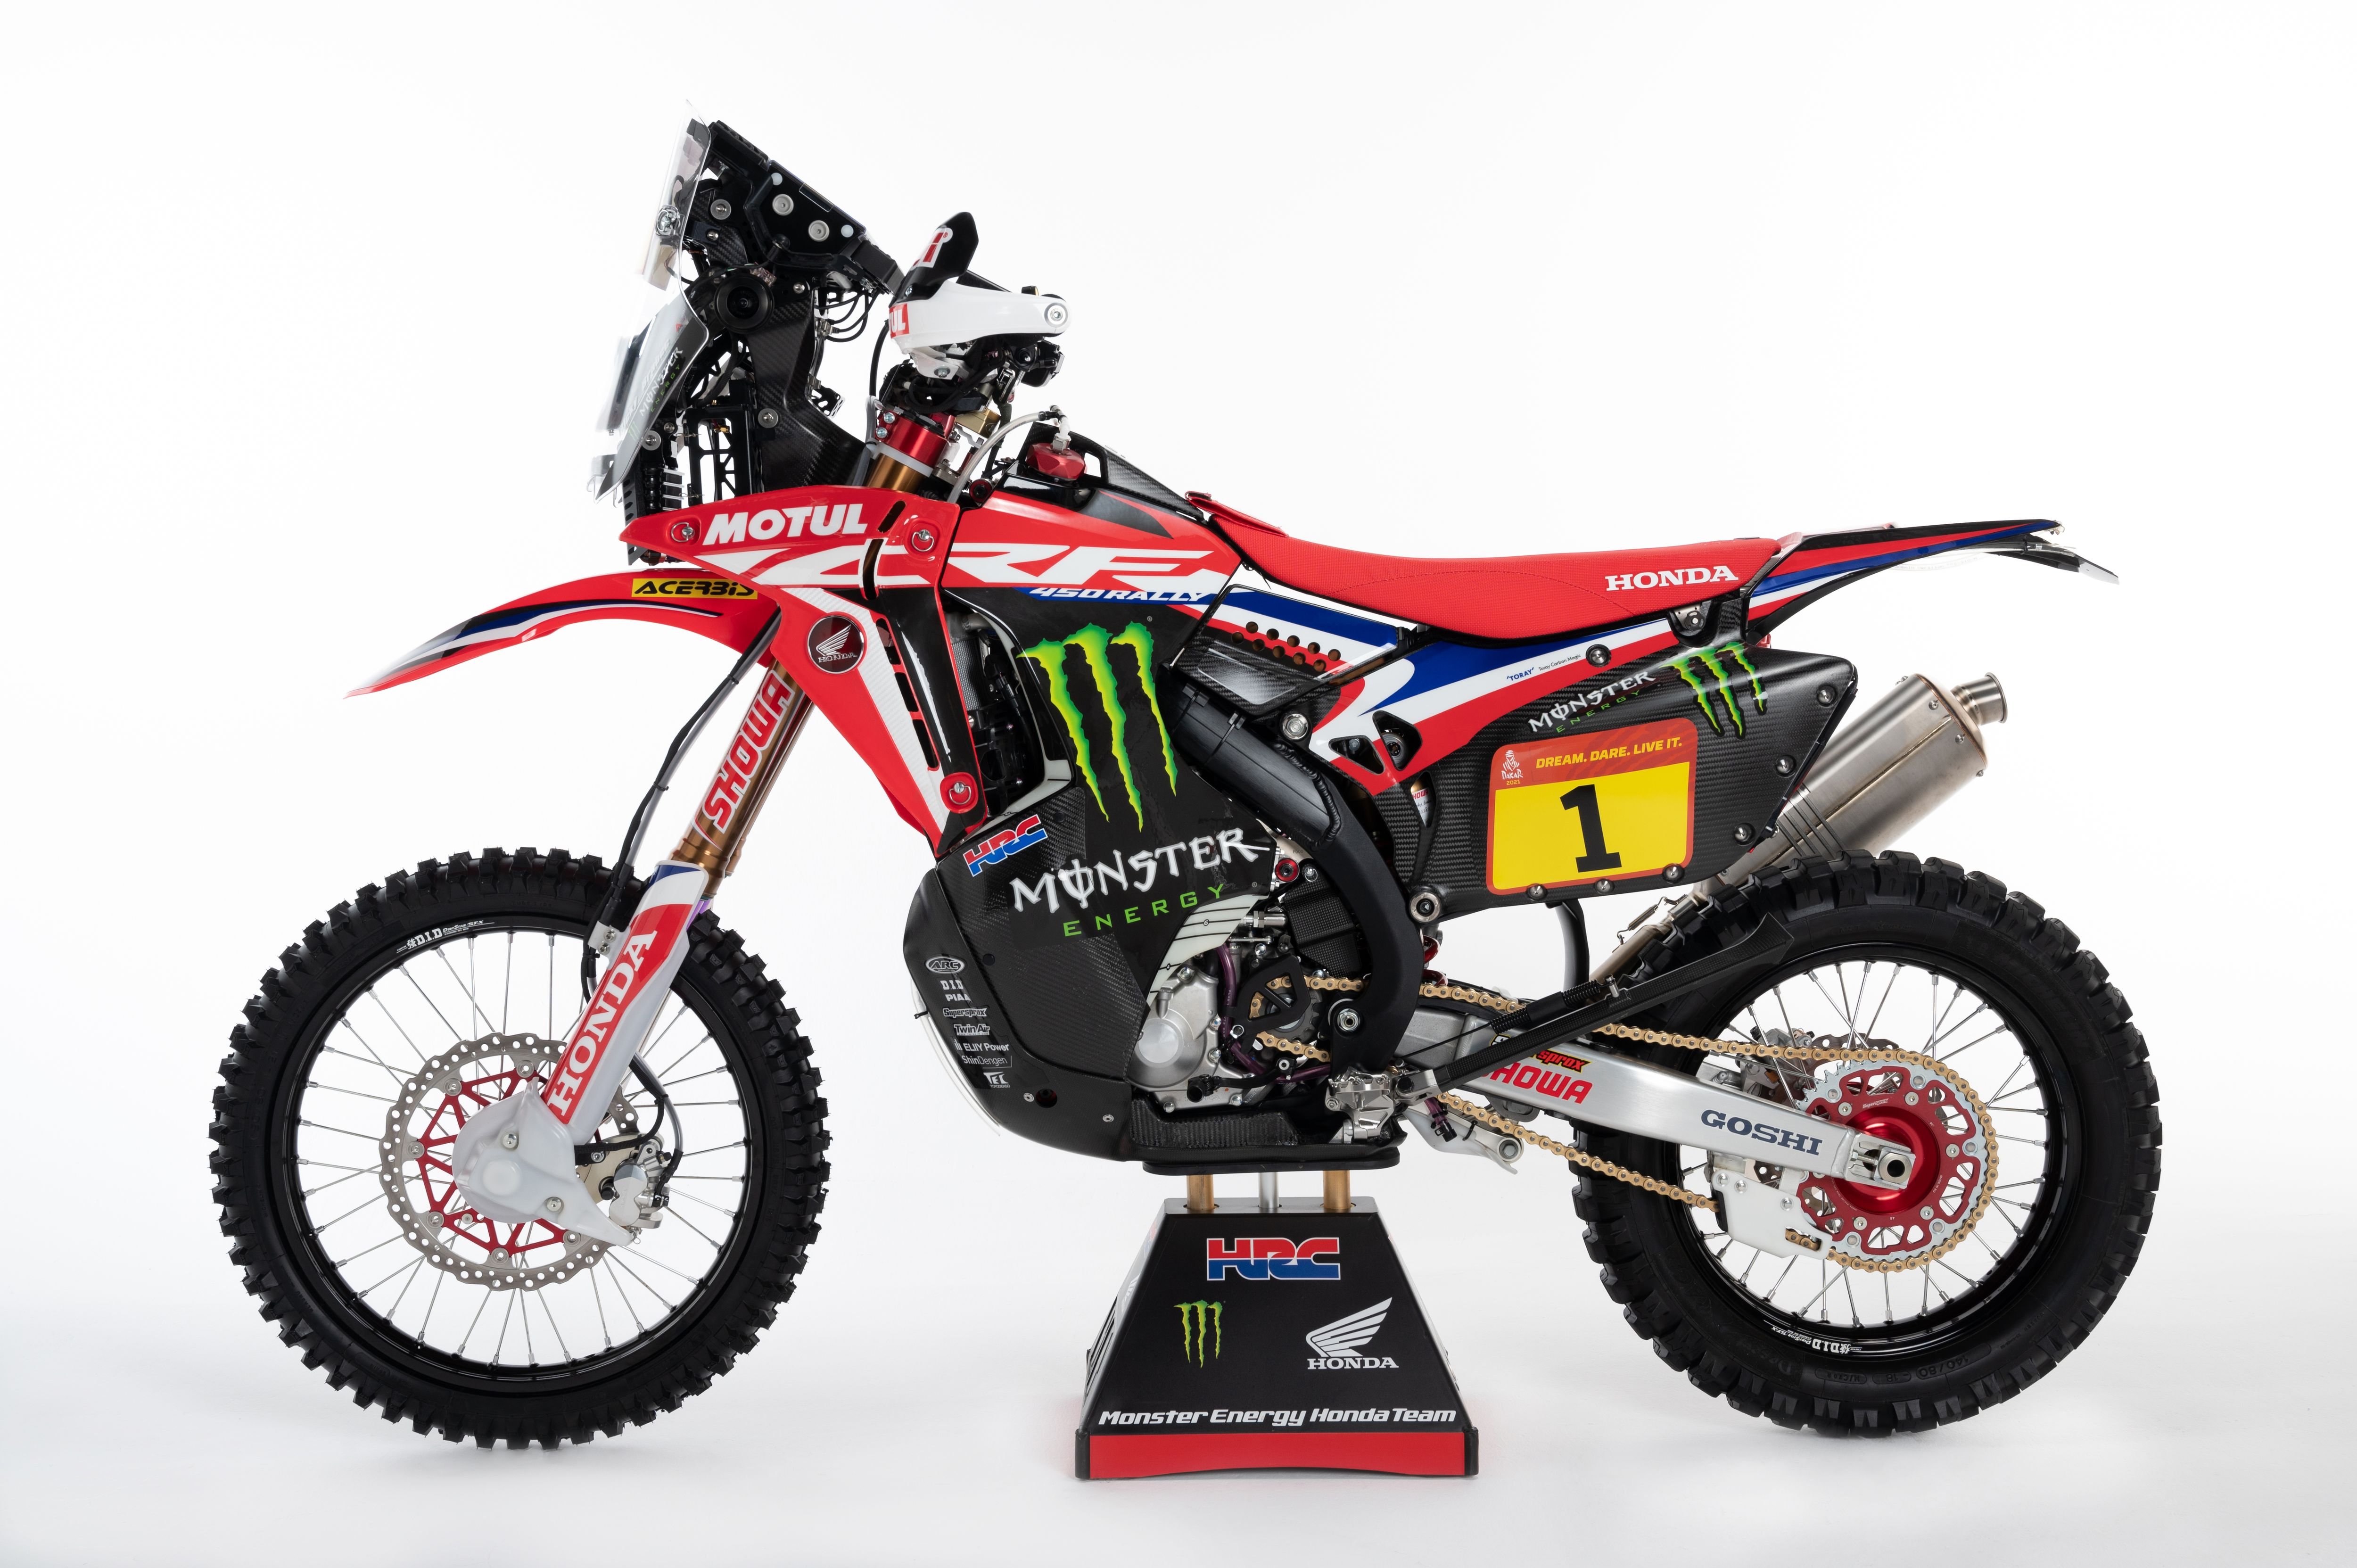 Bikes of the 2021 Dakar Rally